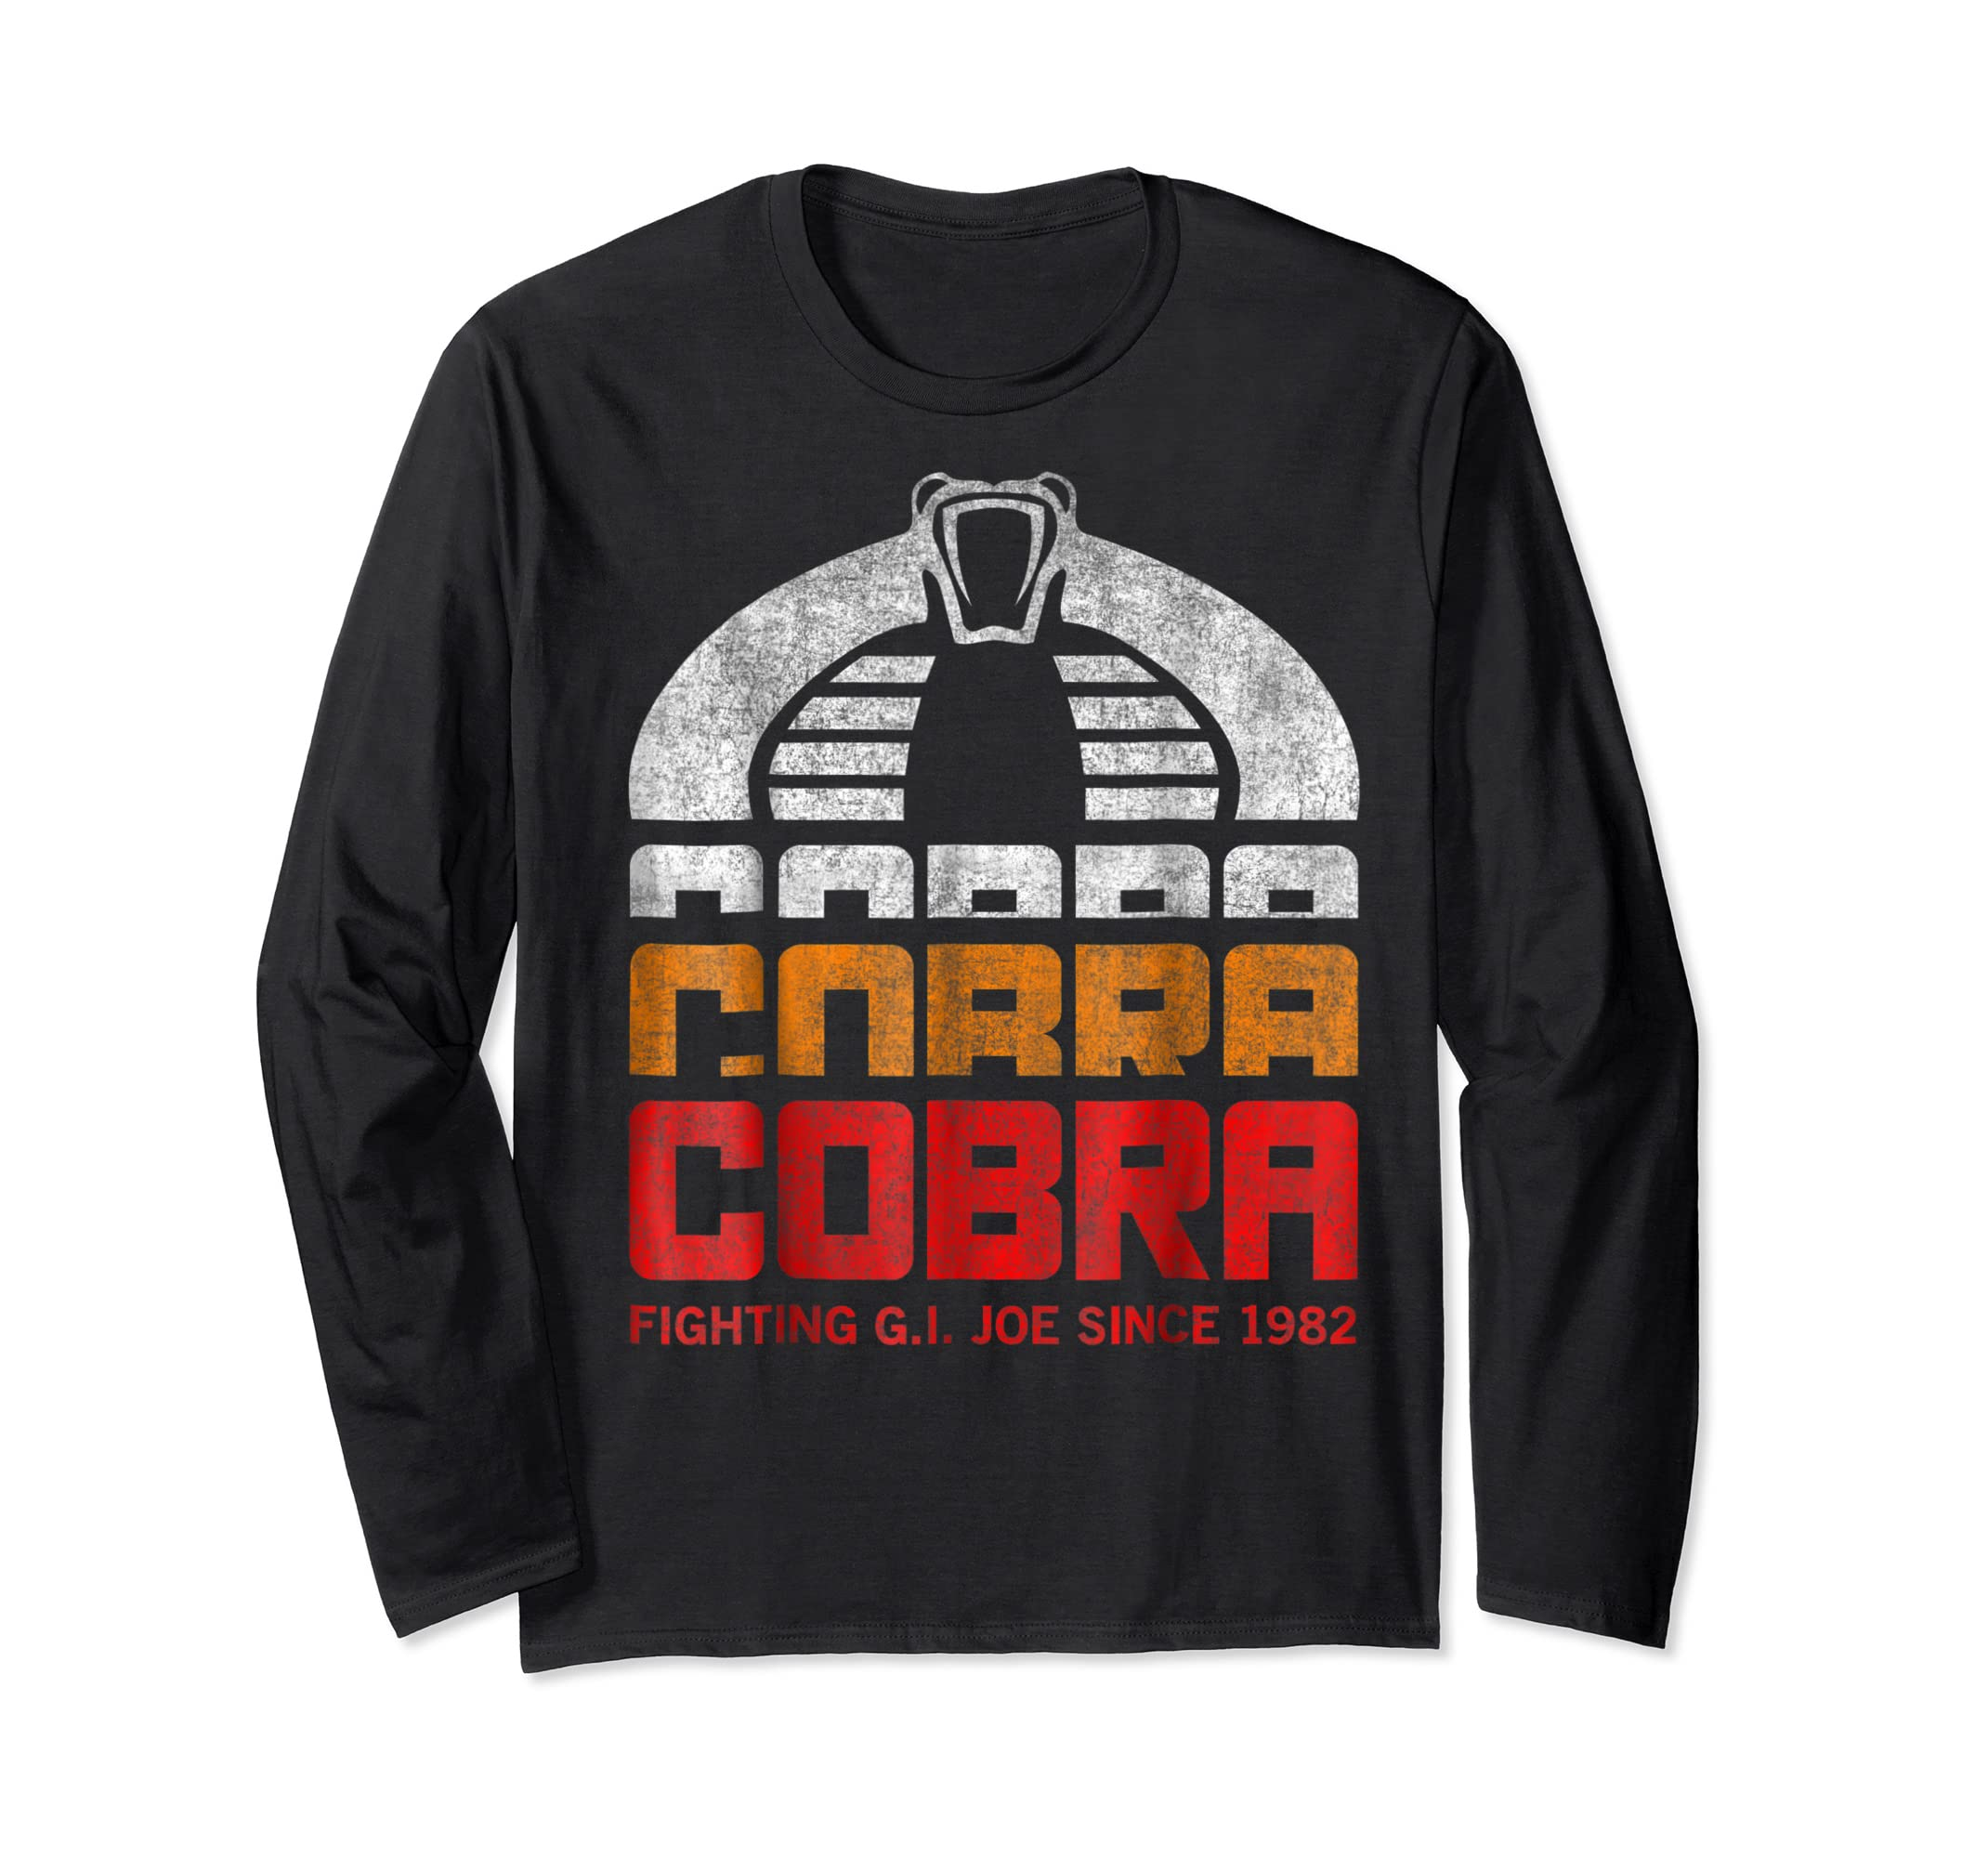 G.I. Joe Retro Cobra Fighting Since 1982 T-Shirt-Long Sleeve-Black